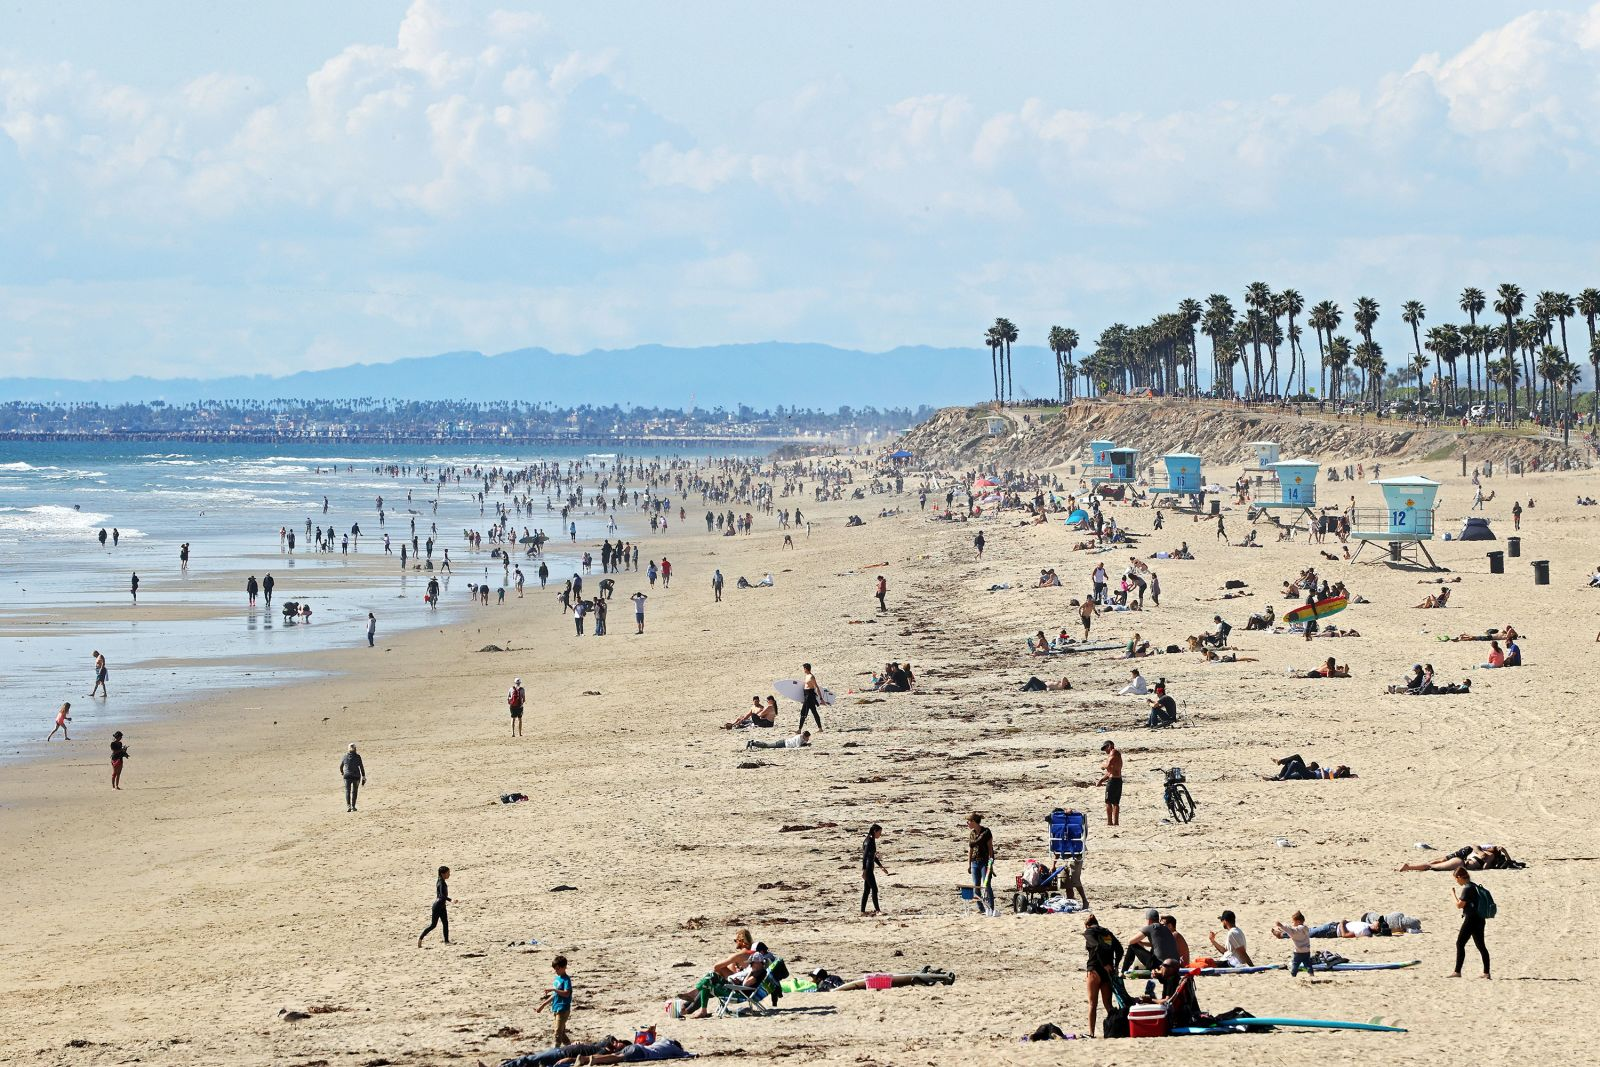 California's Huntington Beach on March 21.